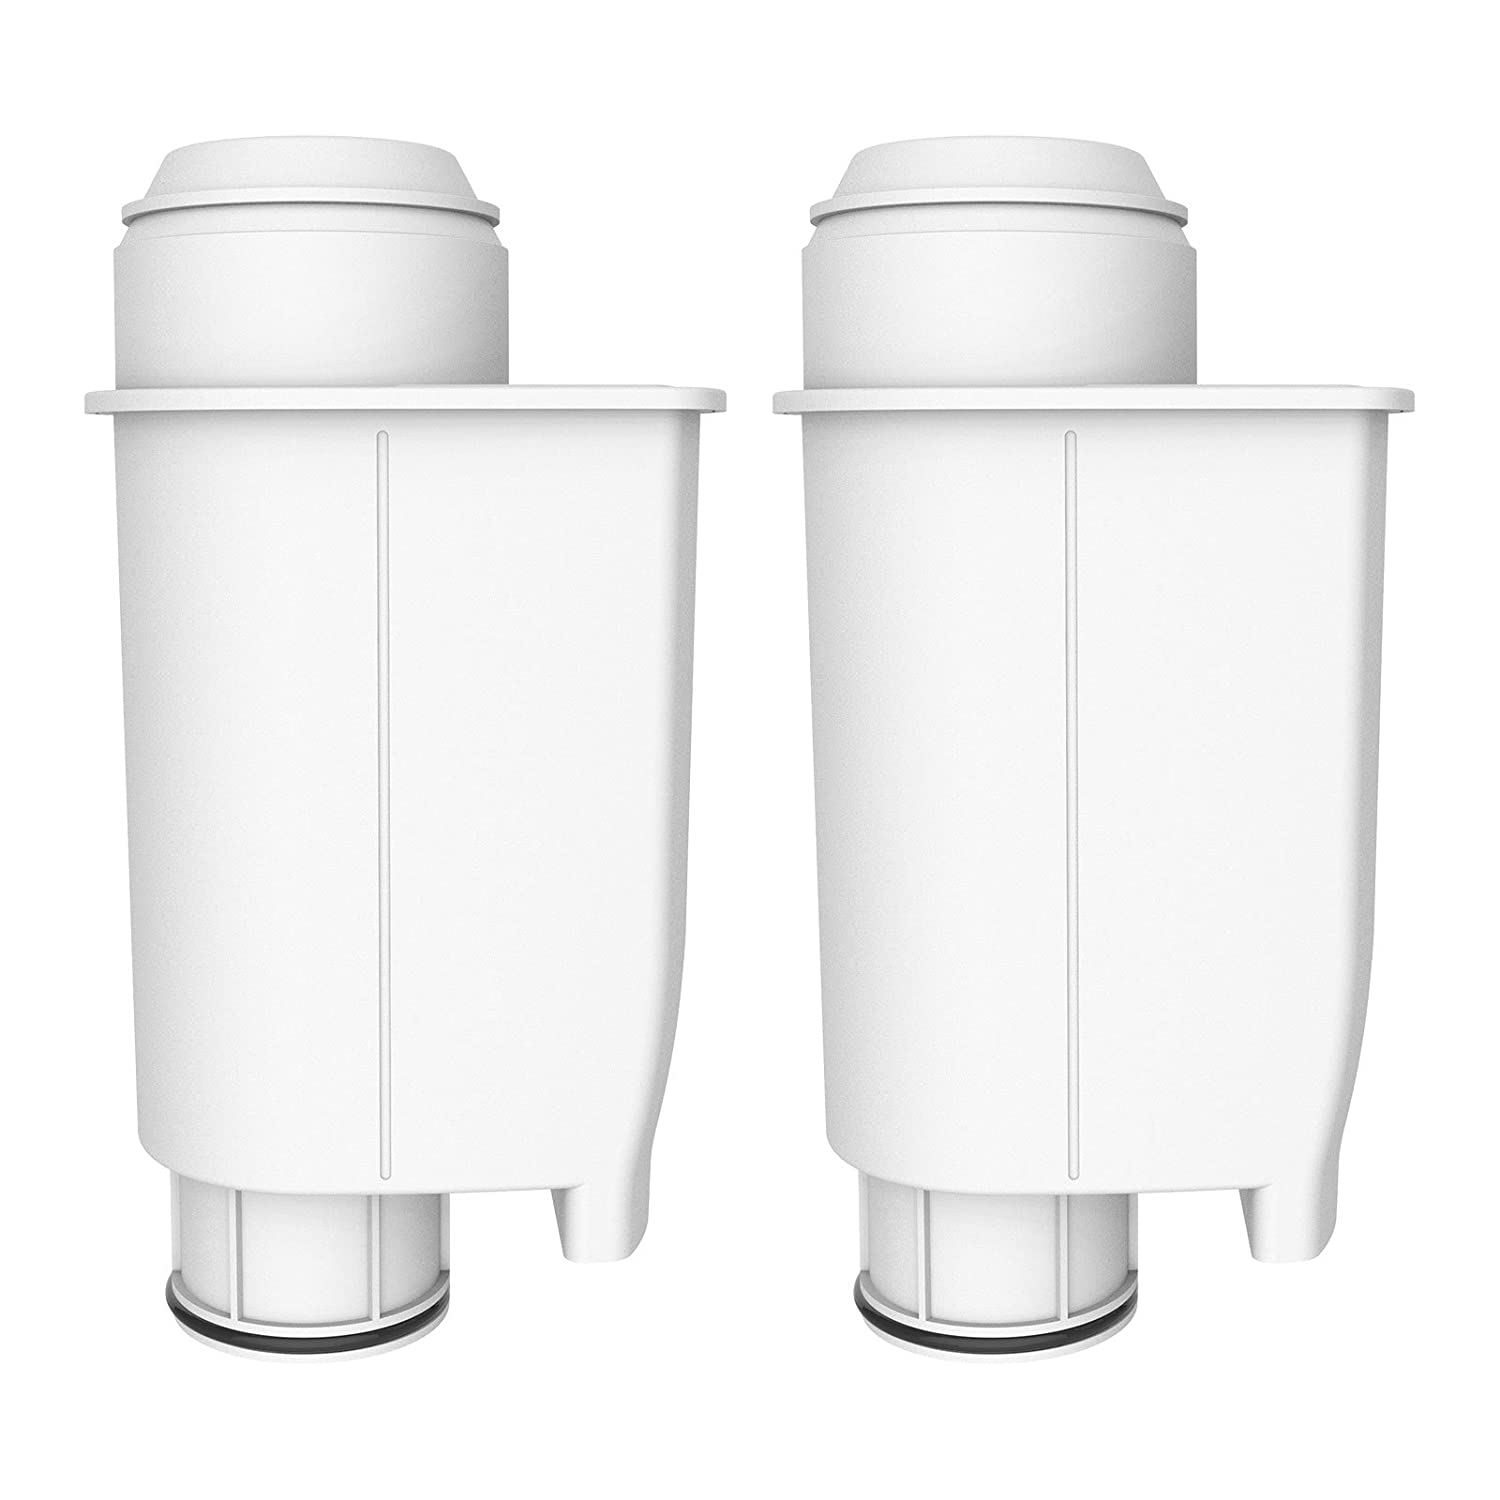 AquaCrest AQK-02 Compatible Coffee-Machine Water Filter Replacement for Brita Intenza+ including various models of Philips Saeco, Bosch, Gaggia (2) EcoPure